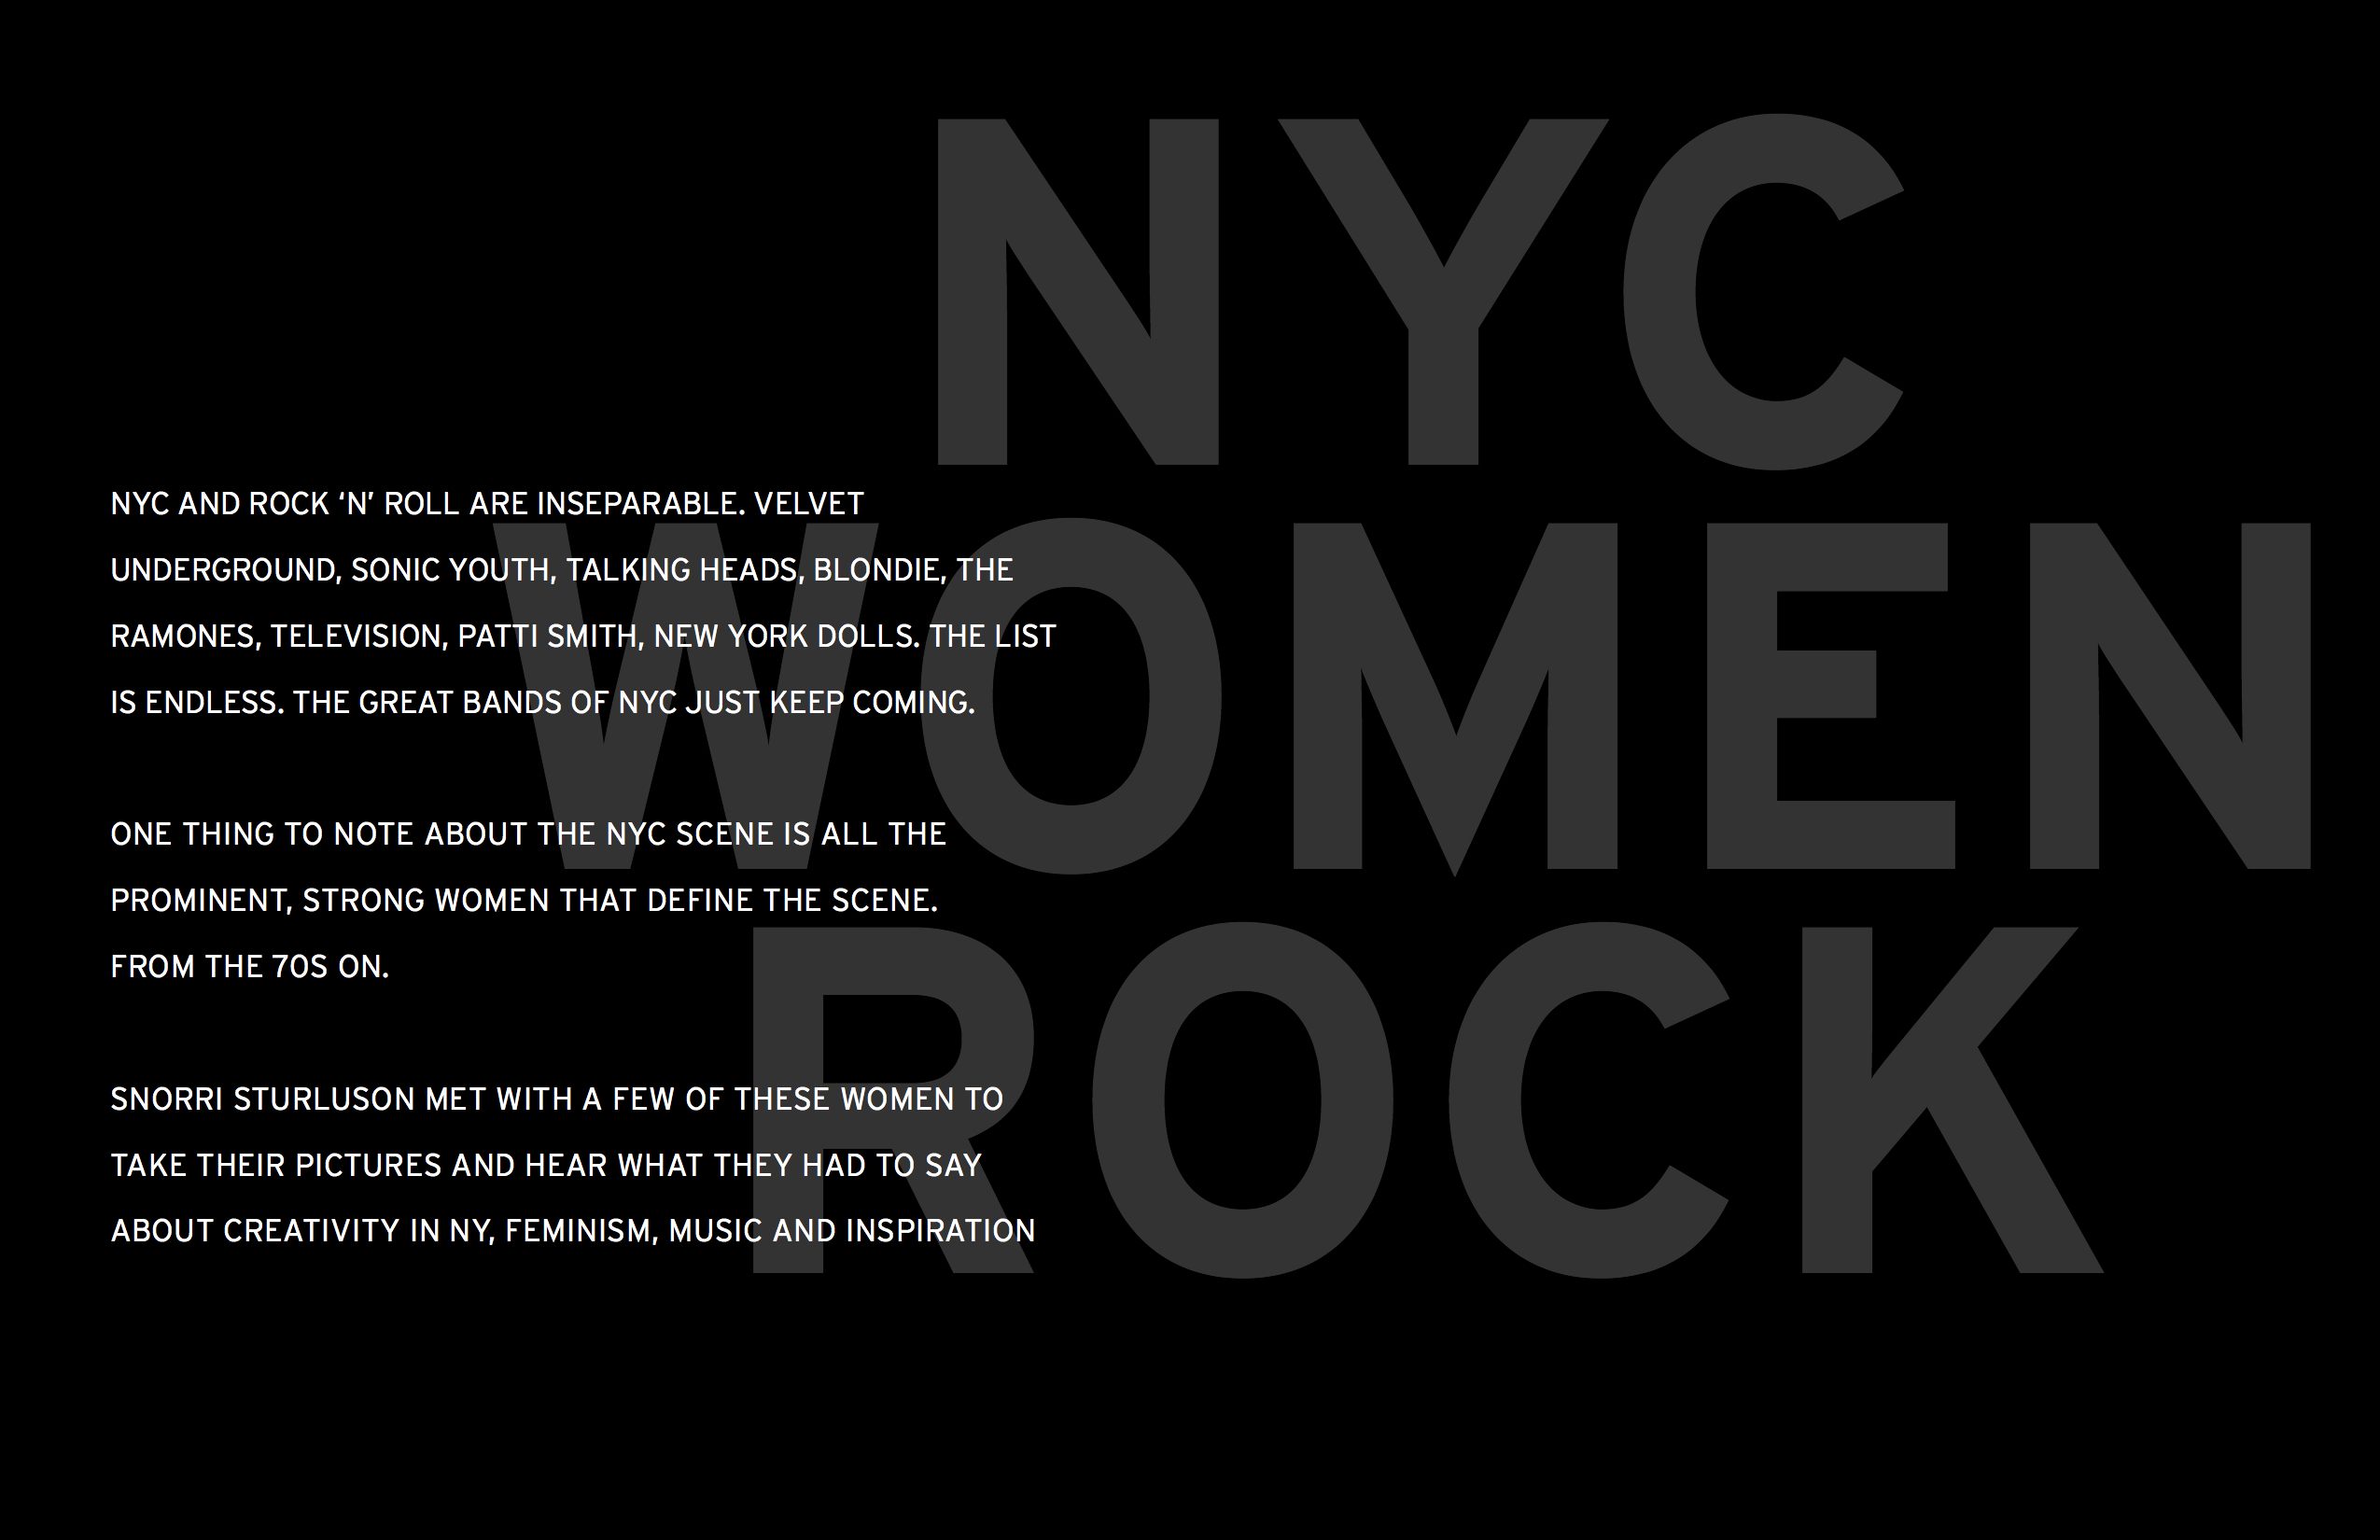 Big NY Women rock_01